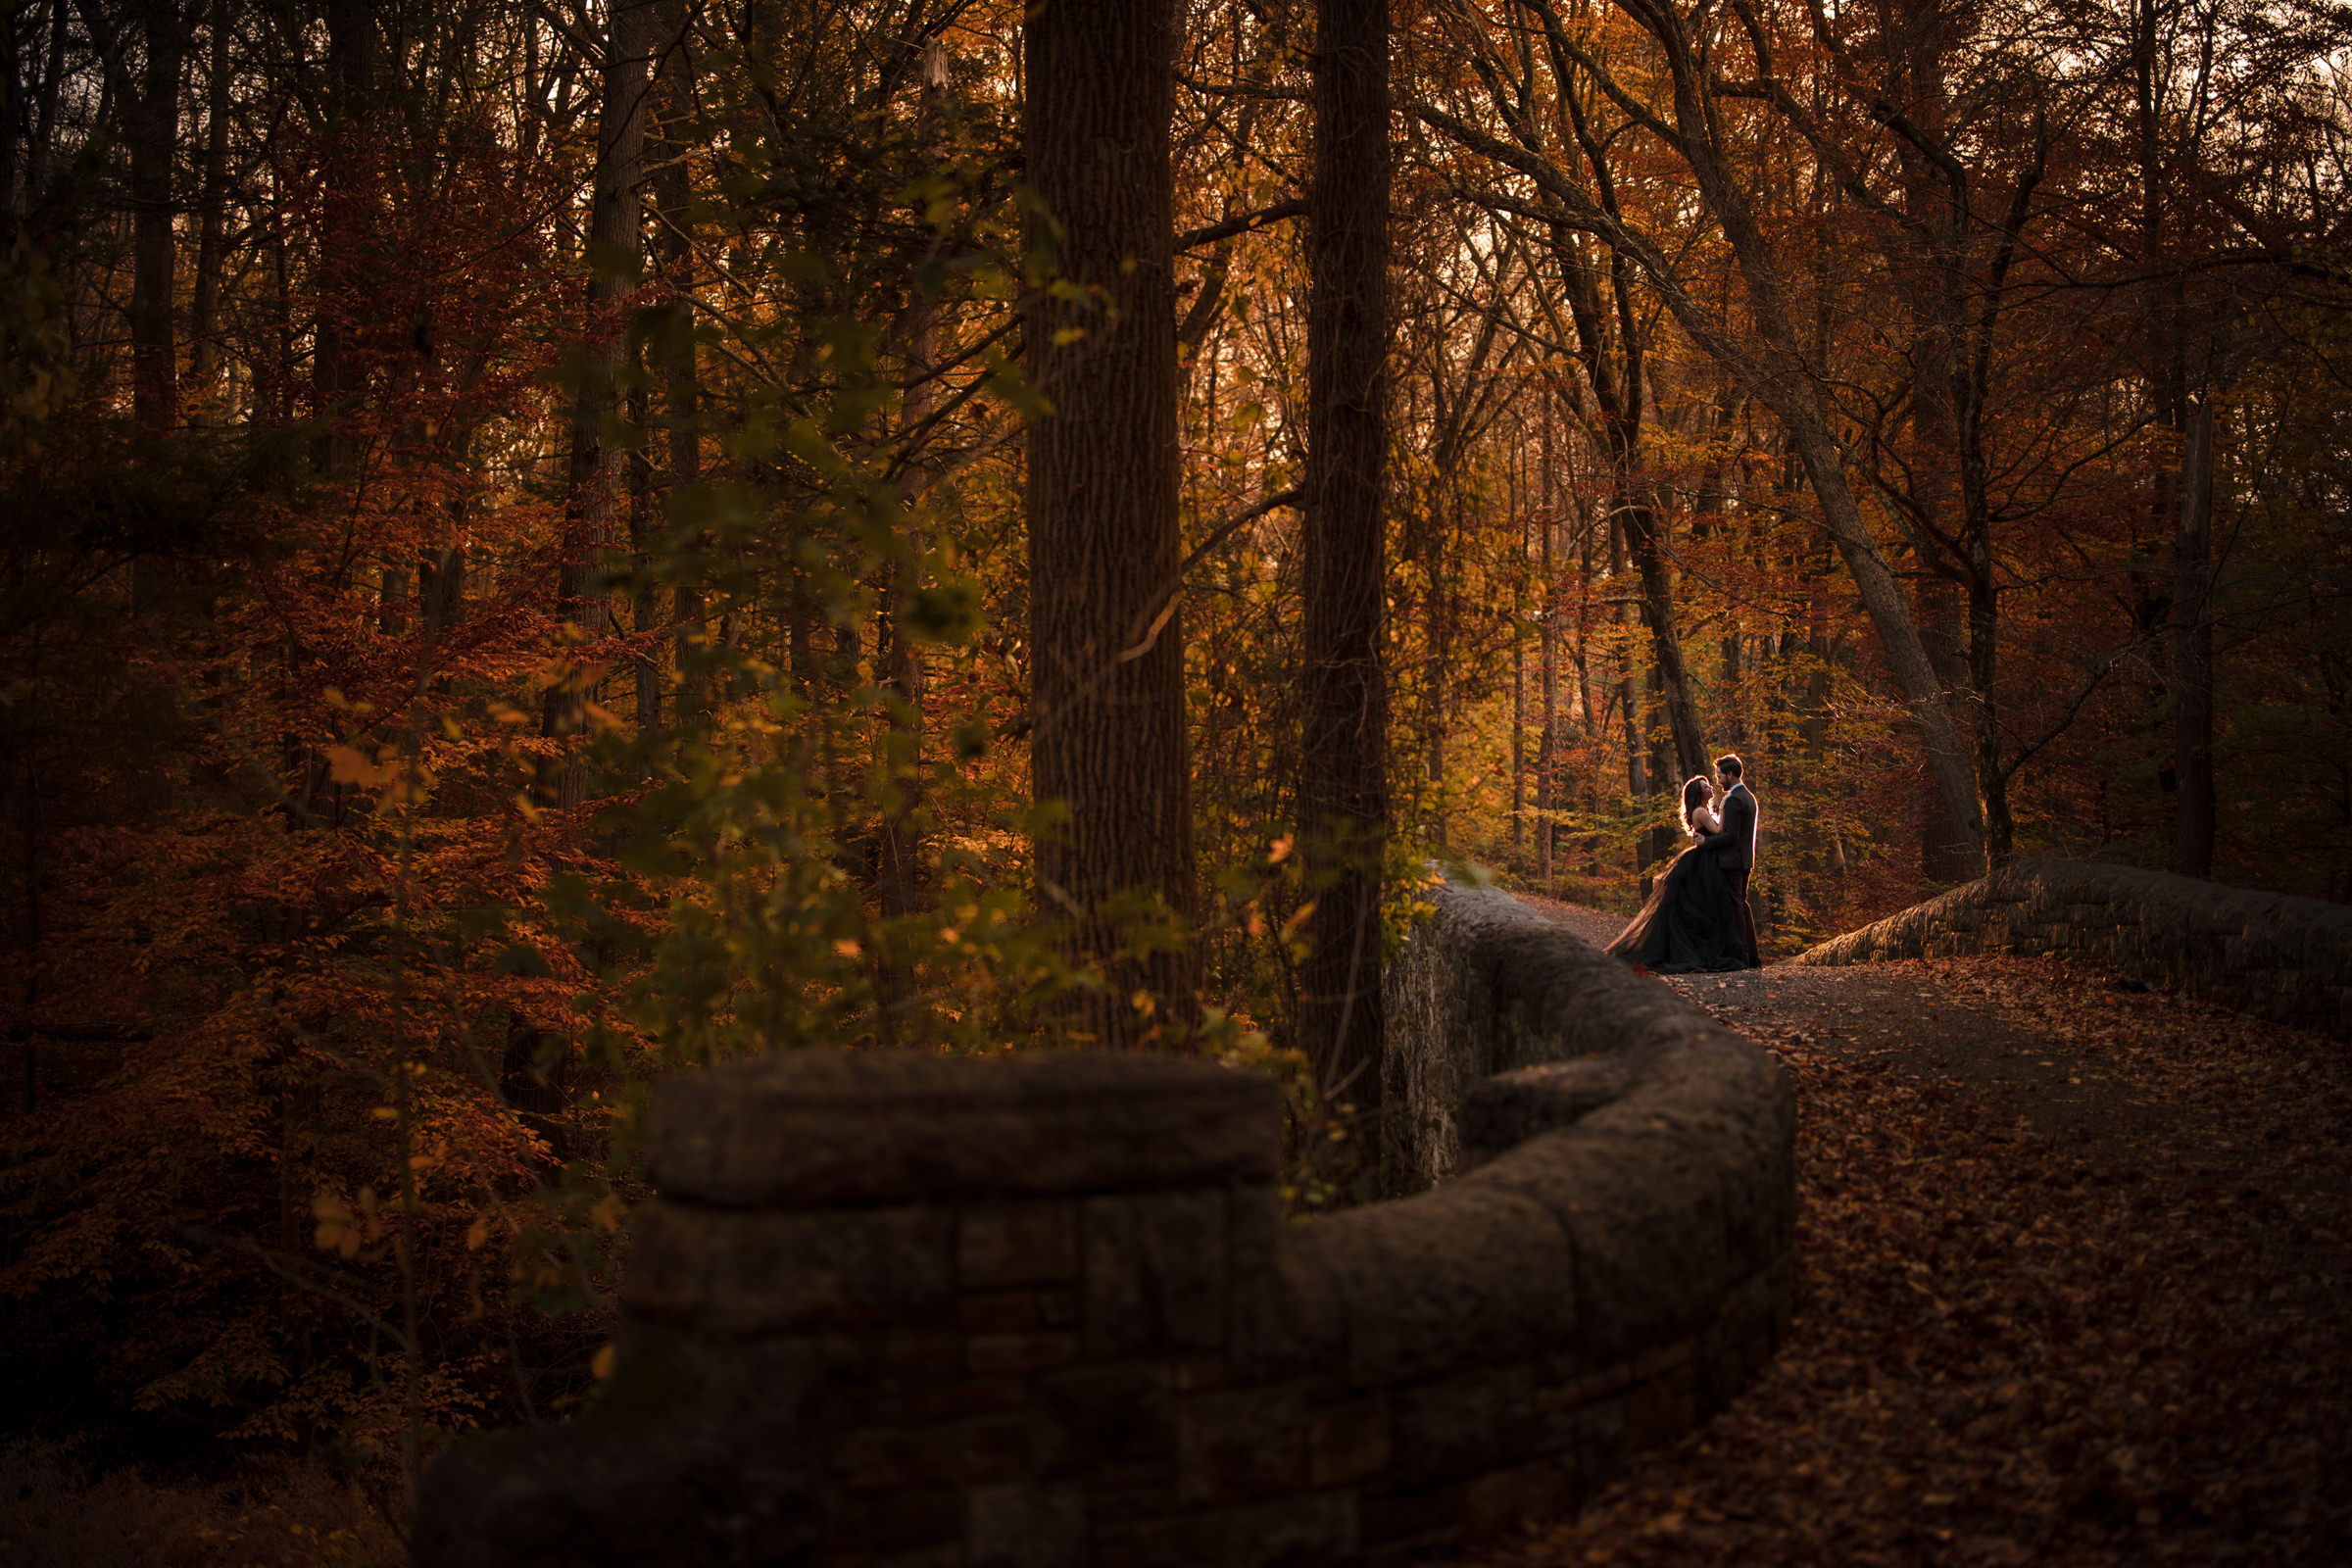 Bride and groom in central park fall foliage  - Photo by Susan Stripling Photography